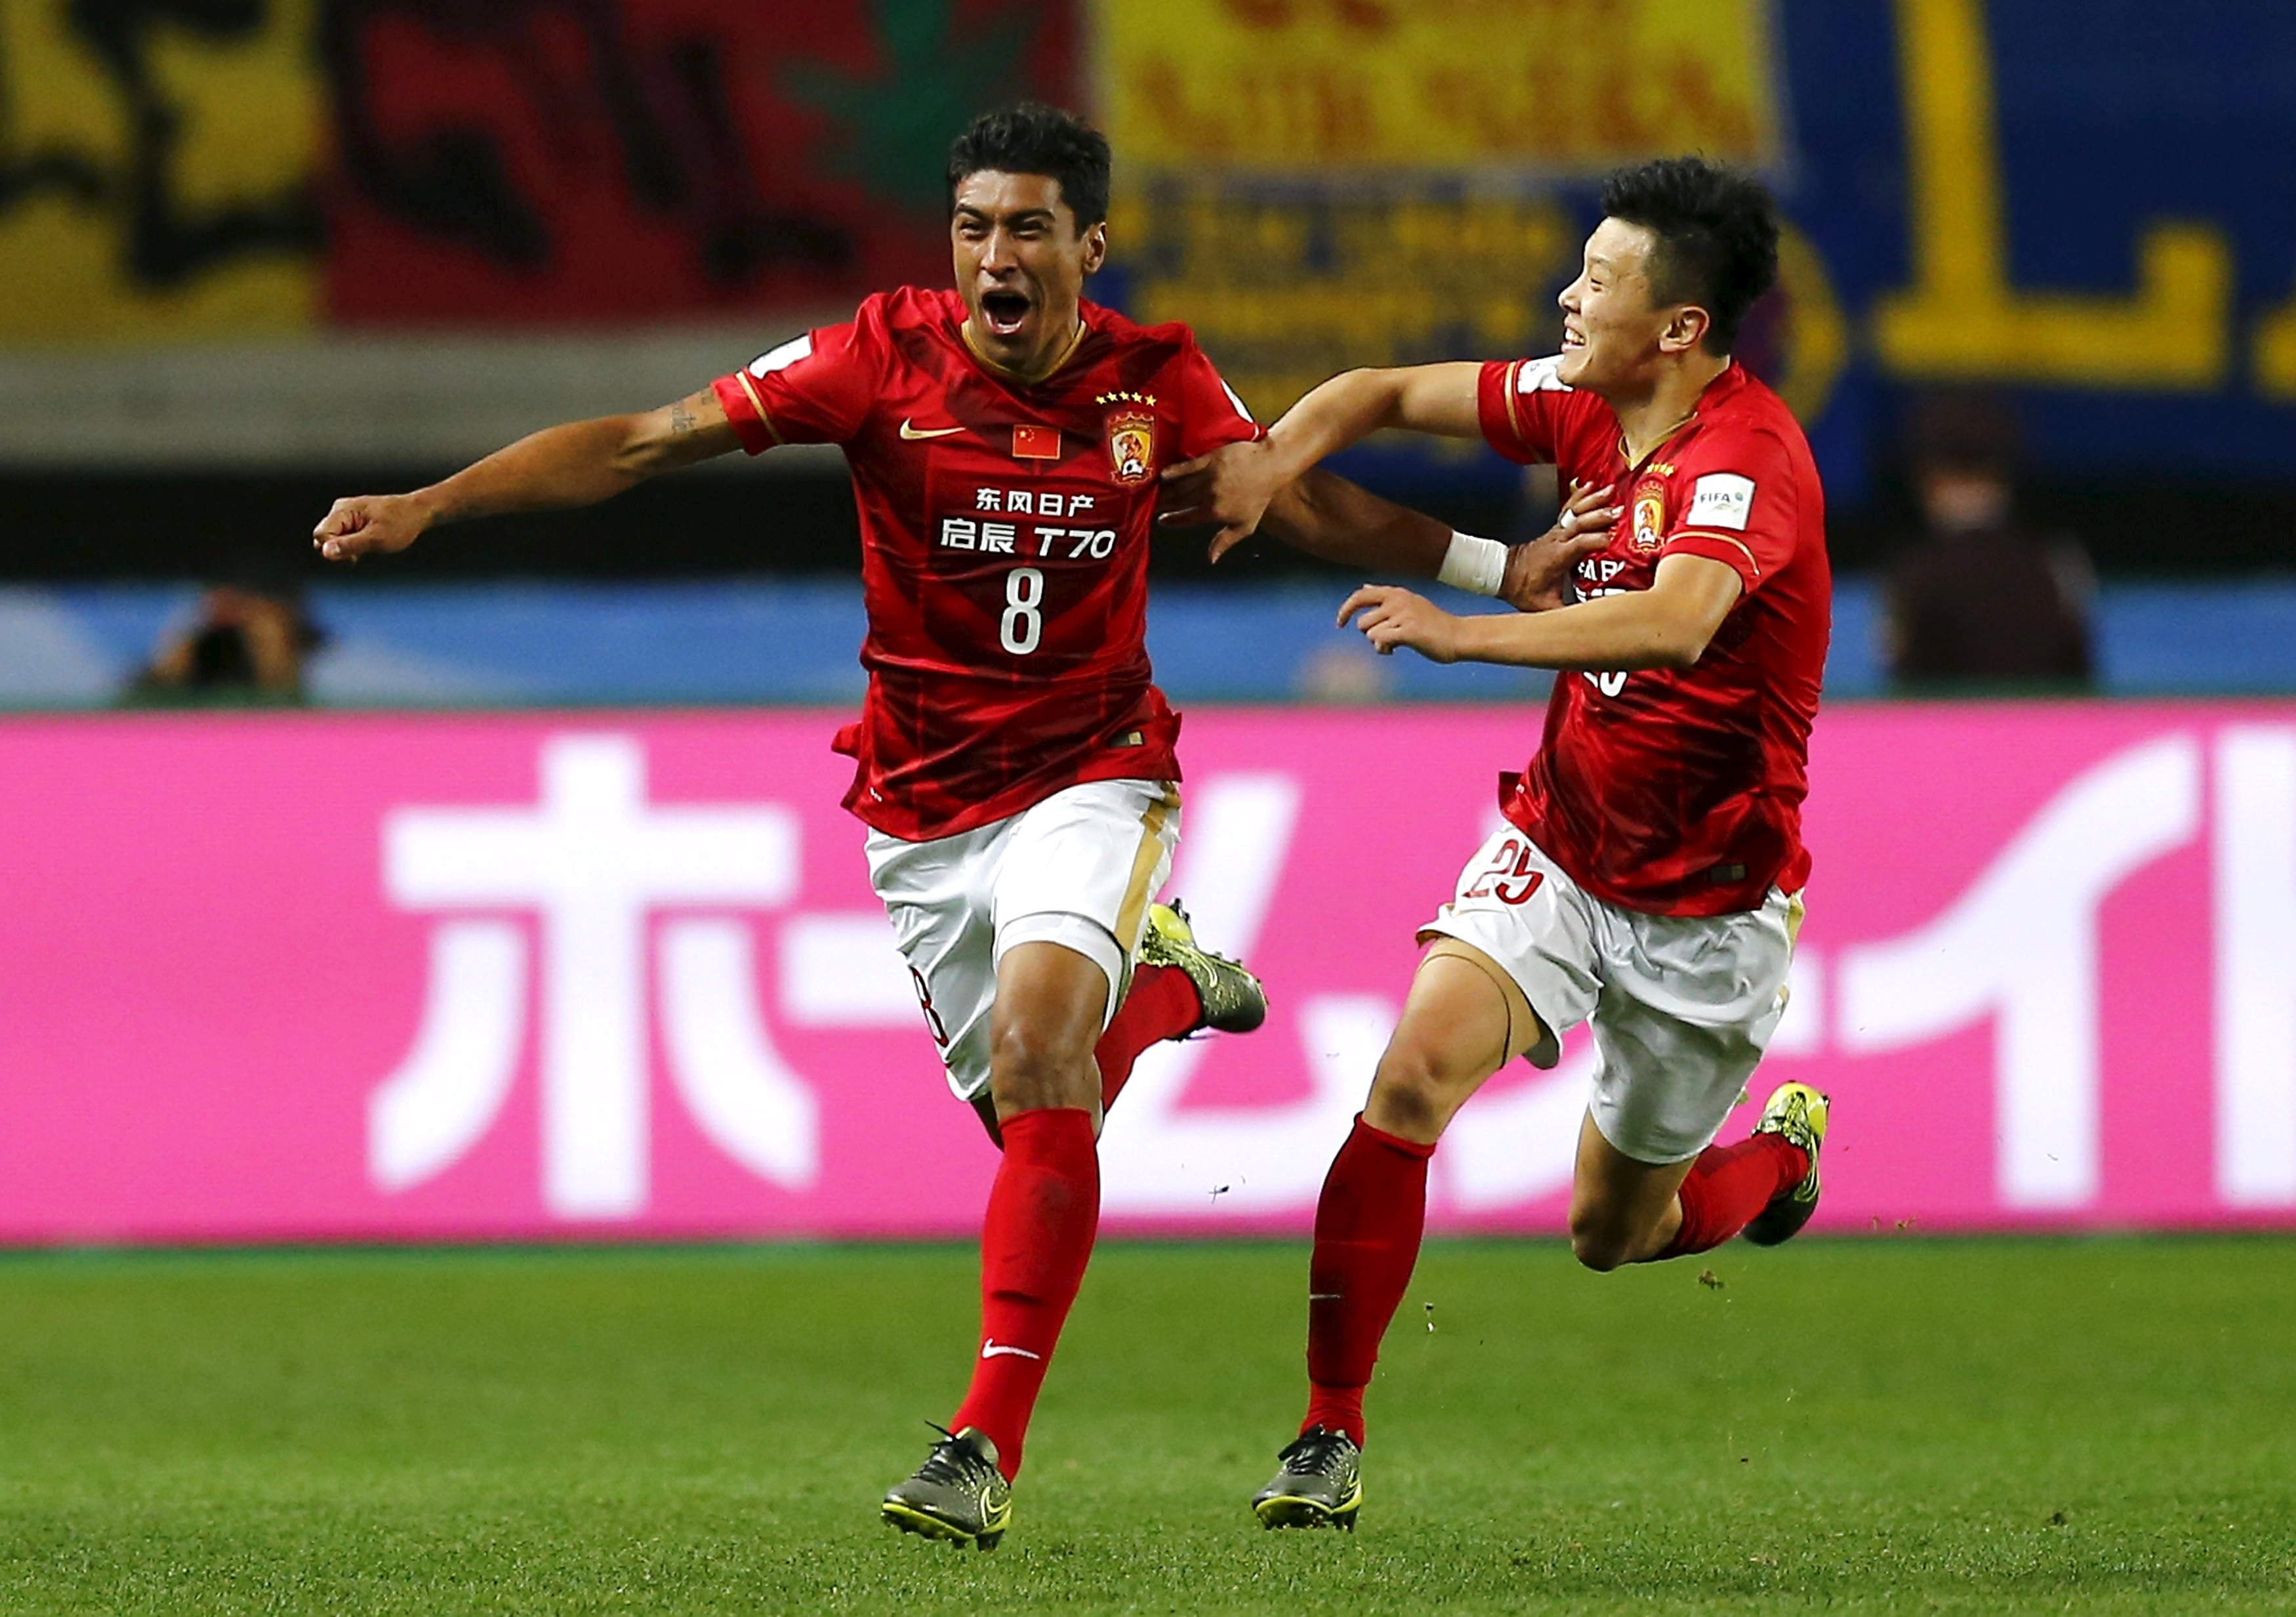 Paulinho (left) of China's Guangzhou Evergrande celebrates with teammate Zou Zheng after he scored against Mexico's Club America during their Club World Cup quarter-final soccer match in Osaka, western Japan, December 13, 2015. Photo: Reuters